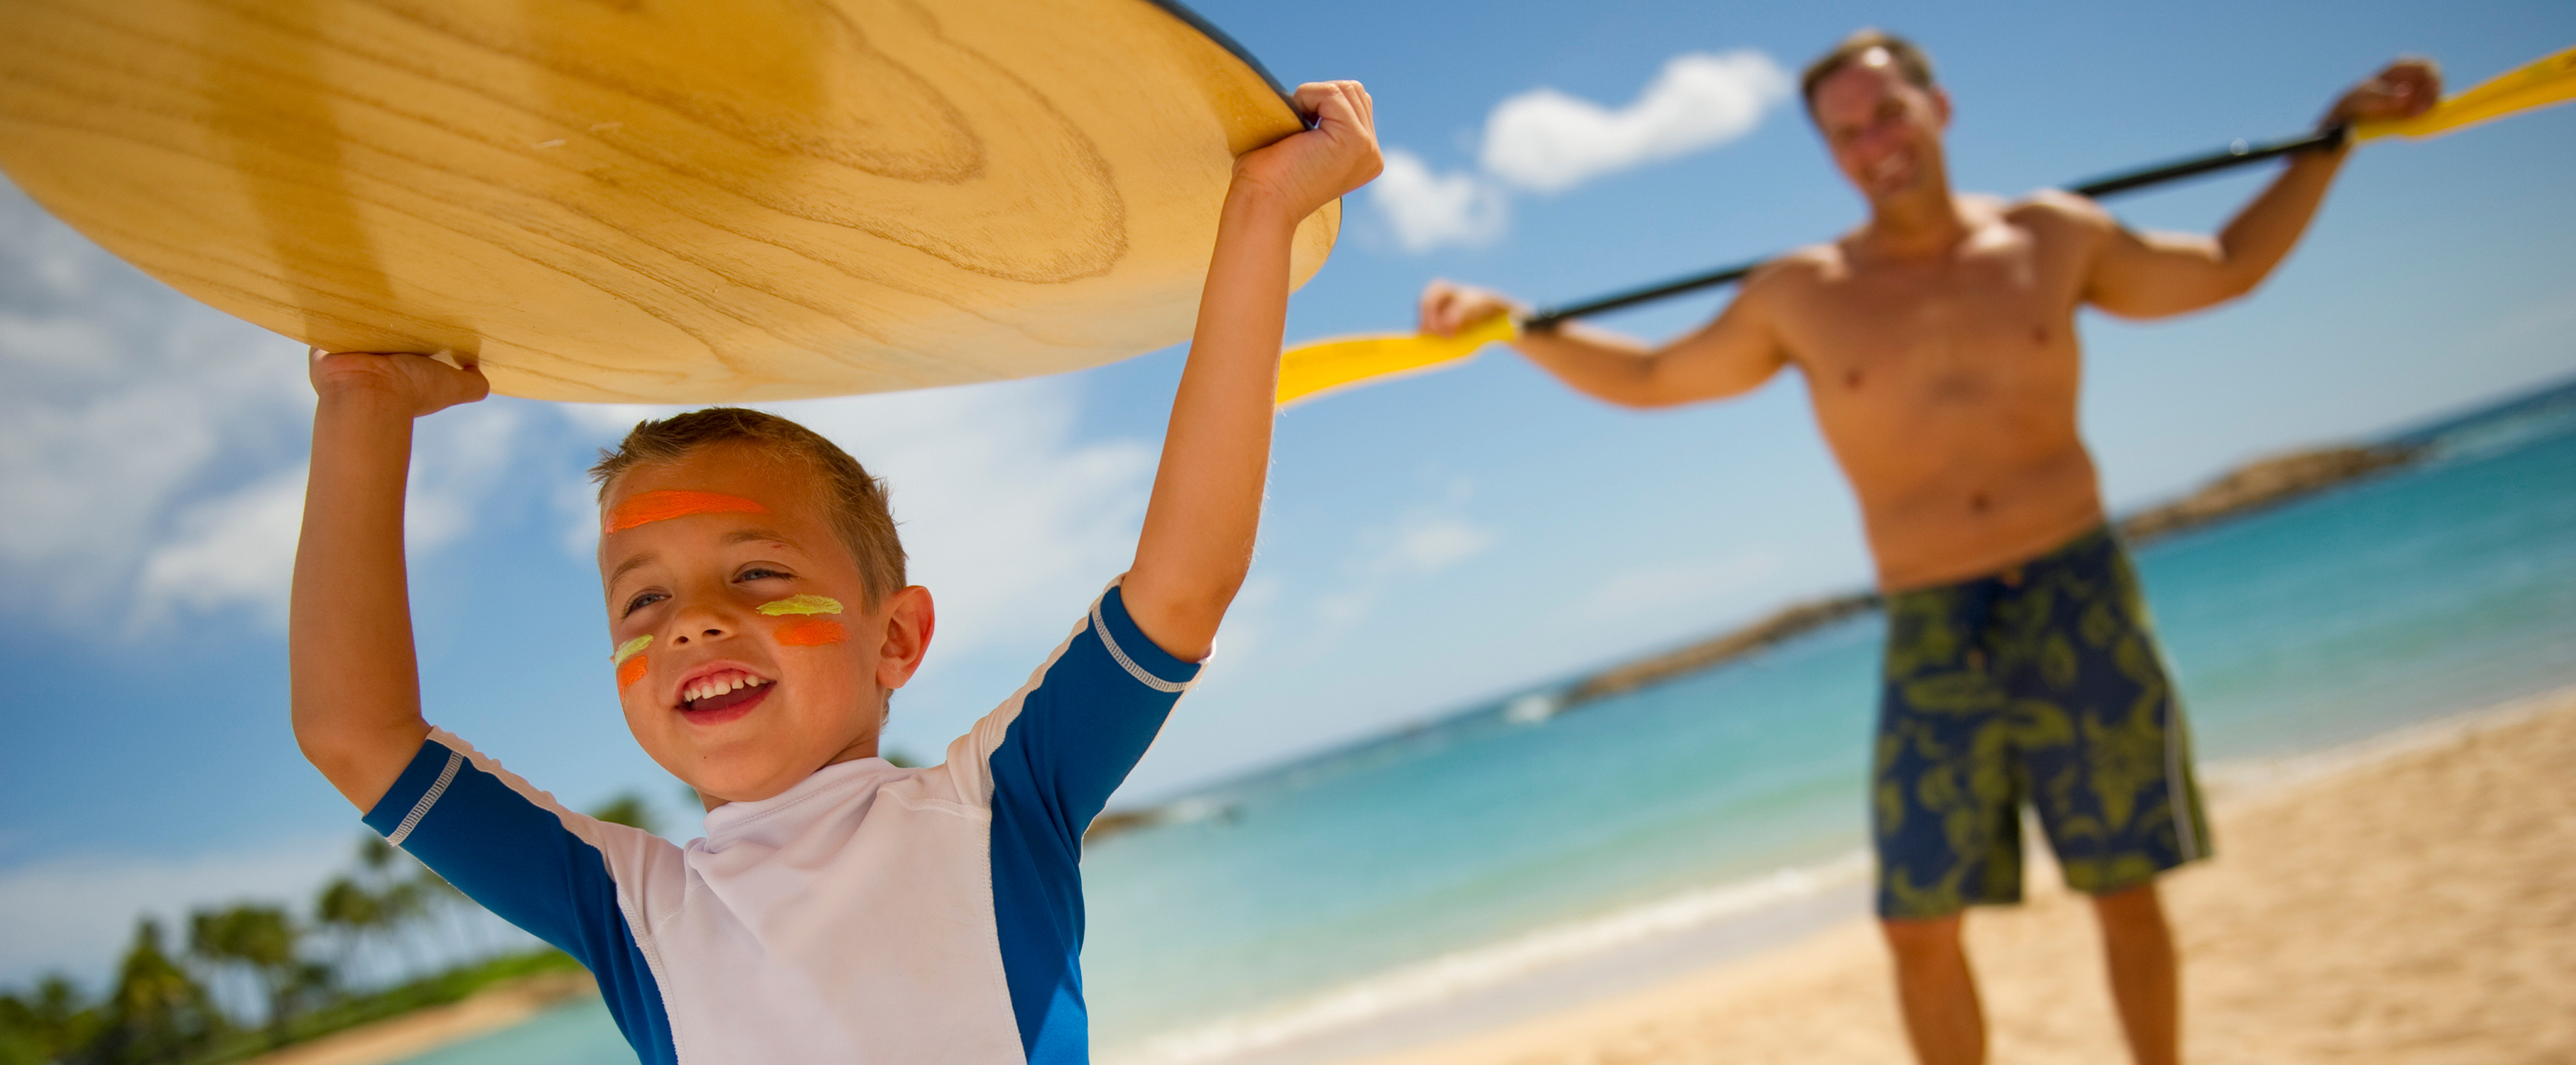 A young boy lifts a paddleboard over his head